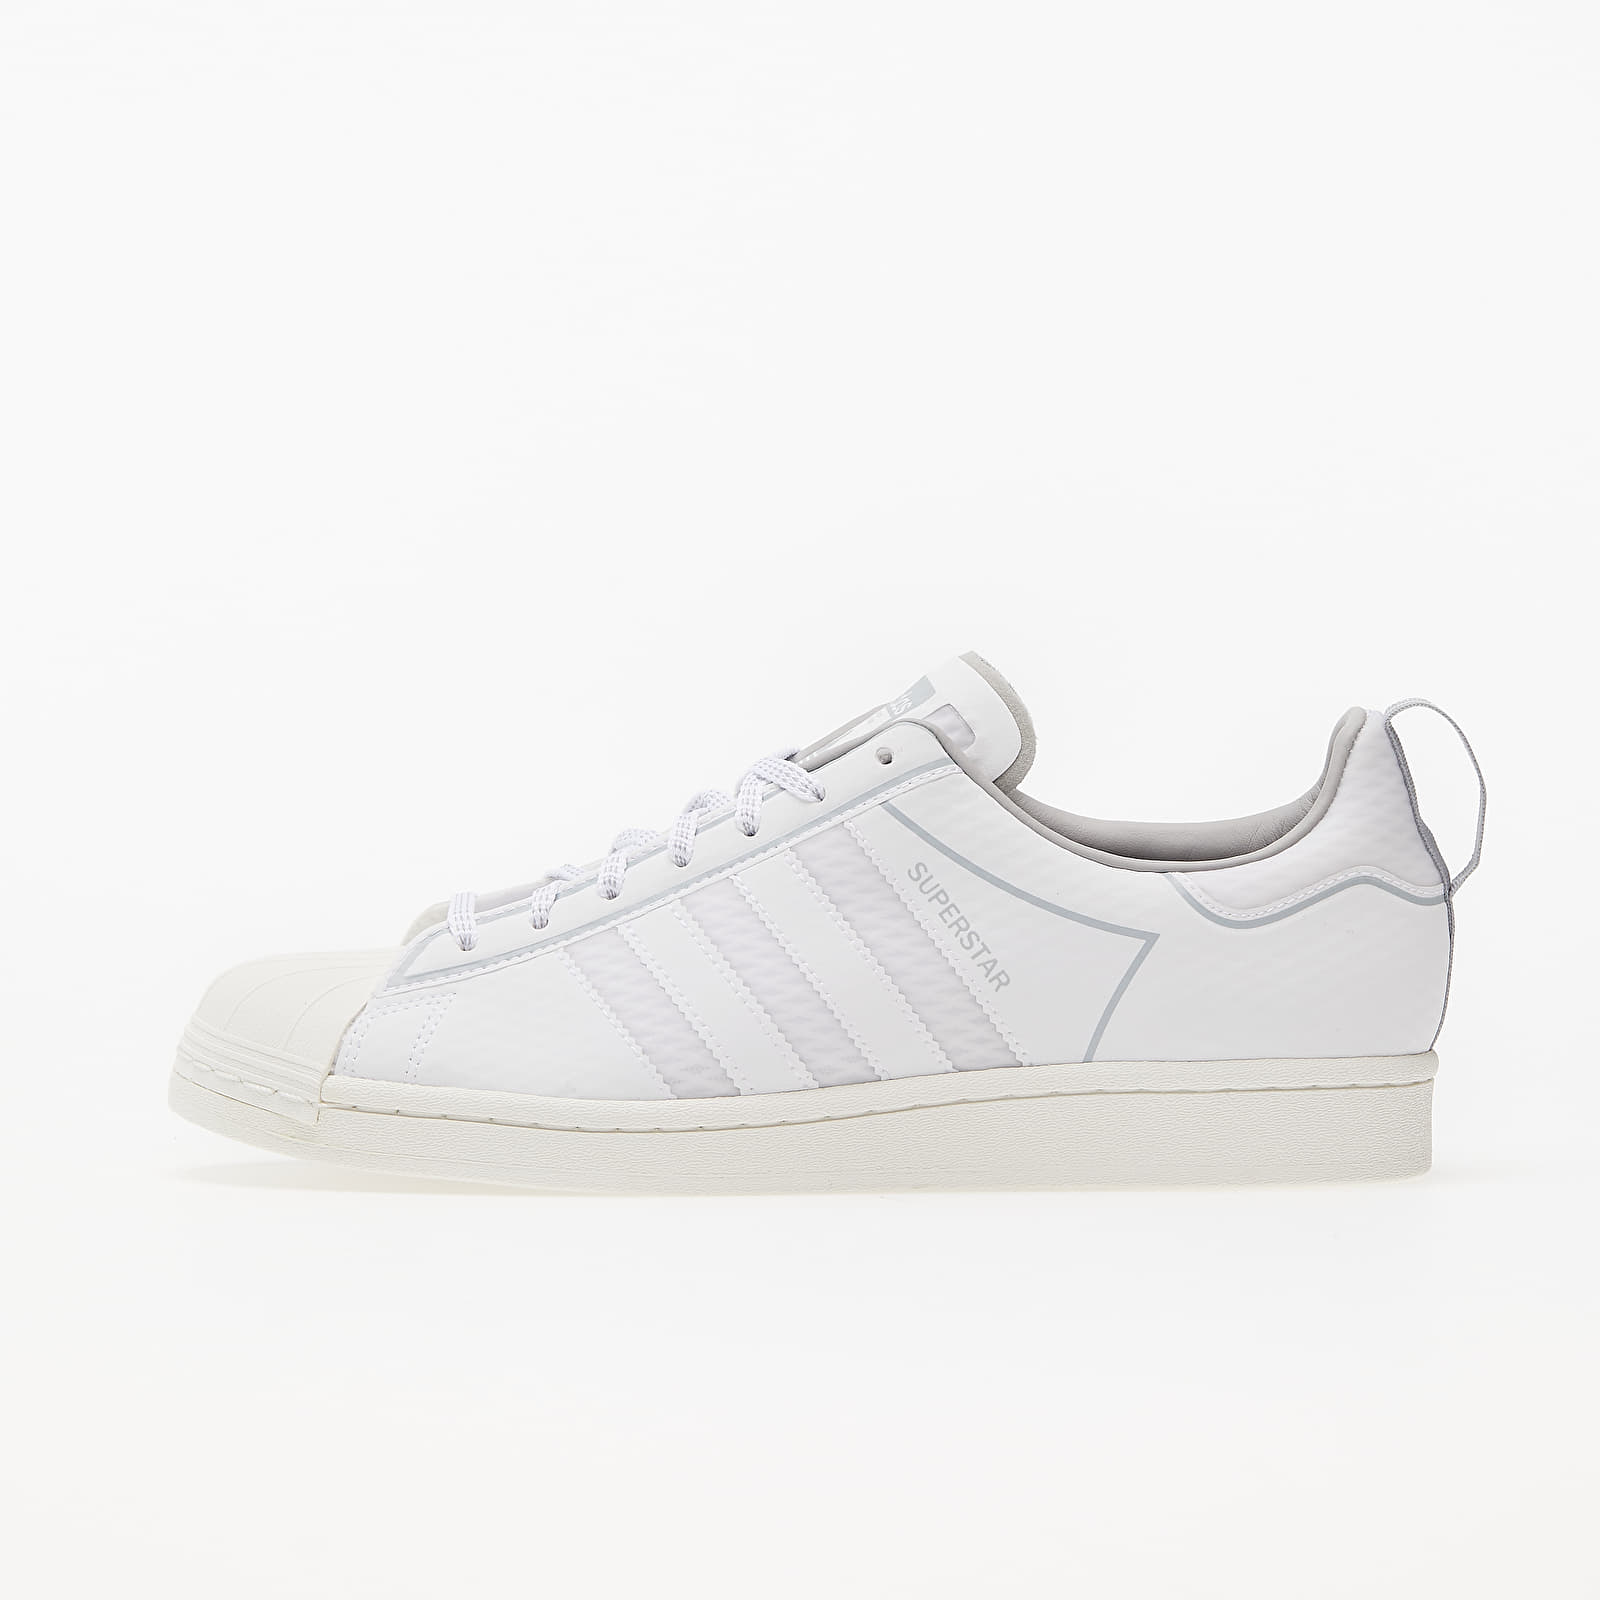 adidas Superstar Ftw White/ Off White/ Grey One EUR 43 1/3